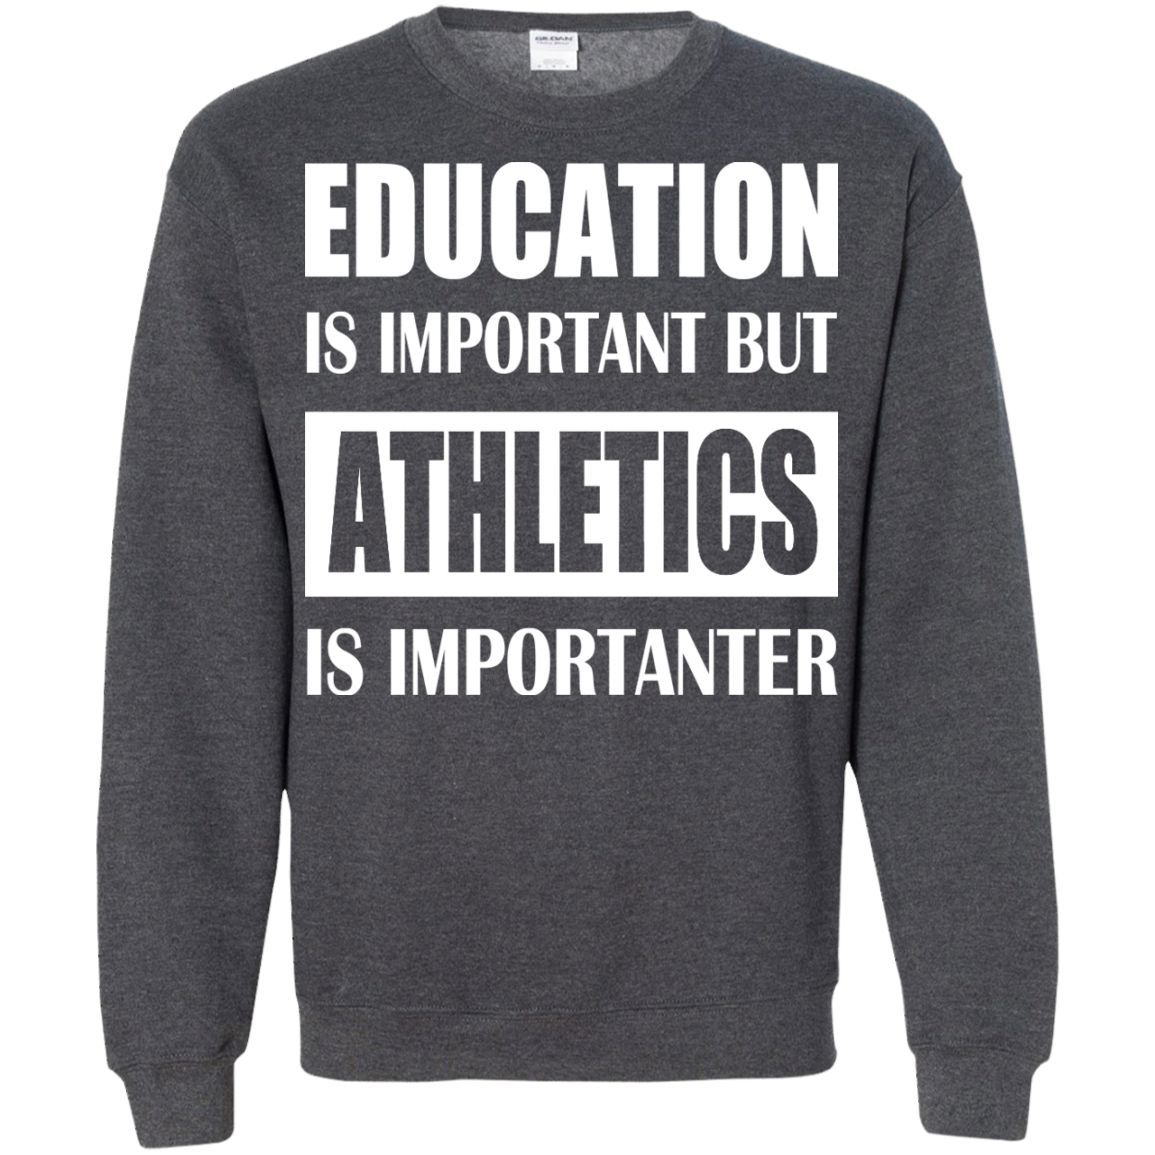 Education Is Important But Athletics Is Importanter Sweatshirts